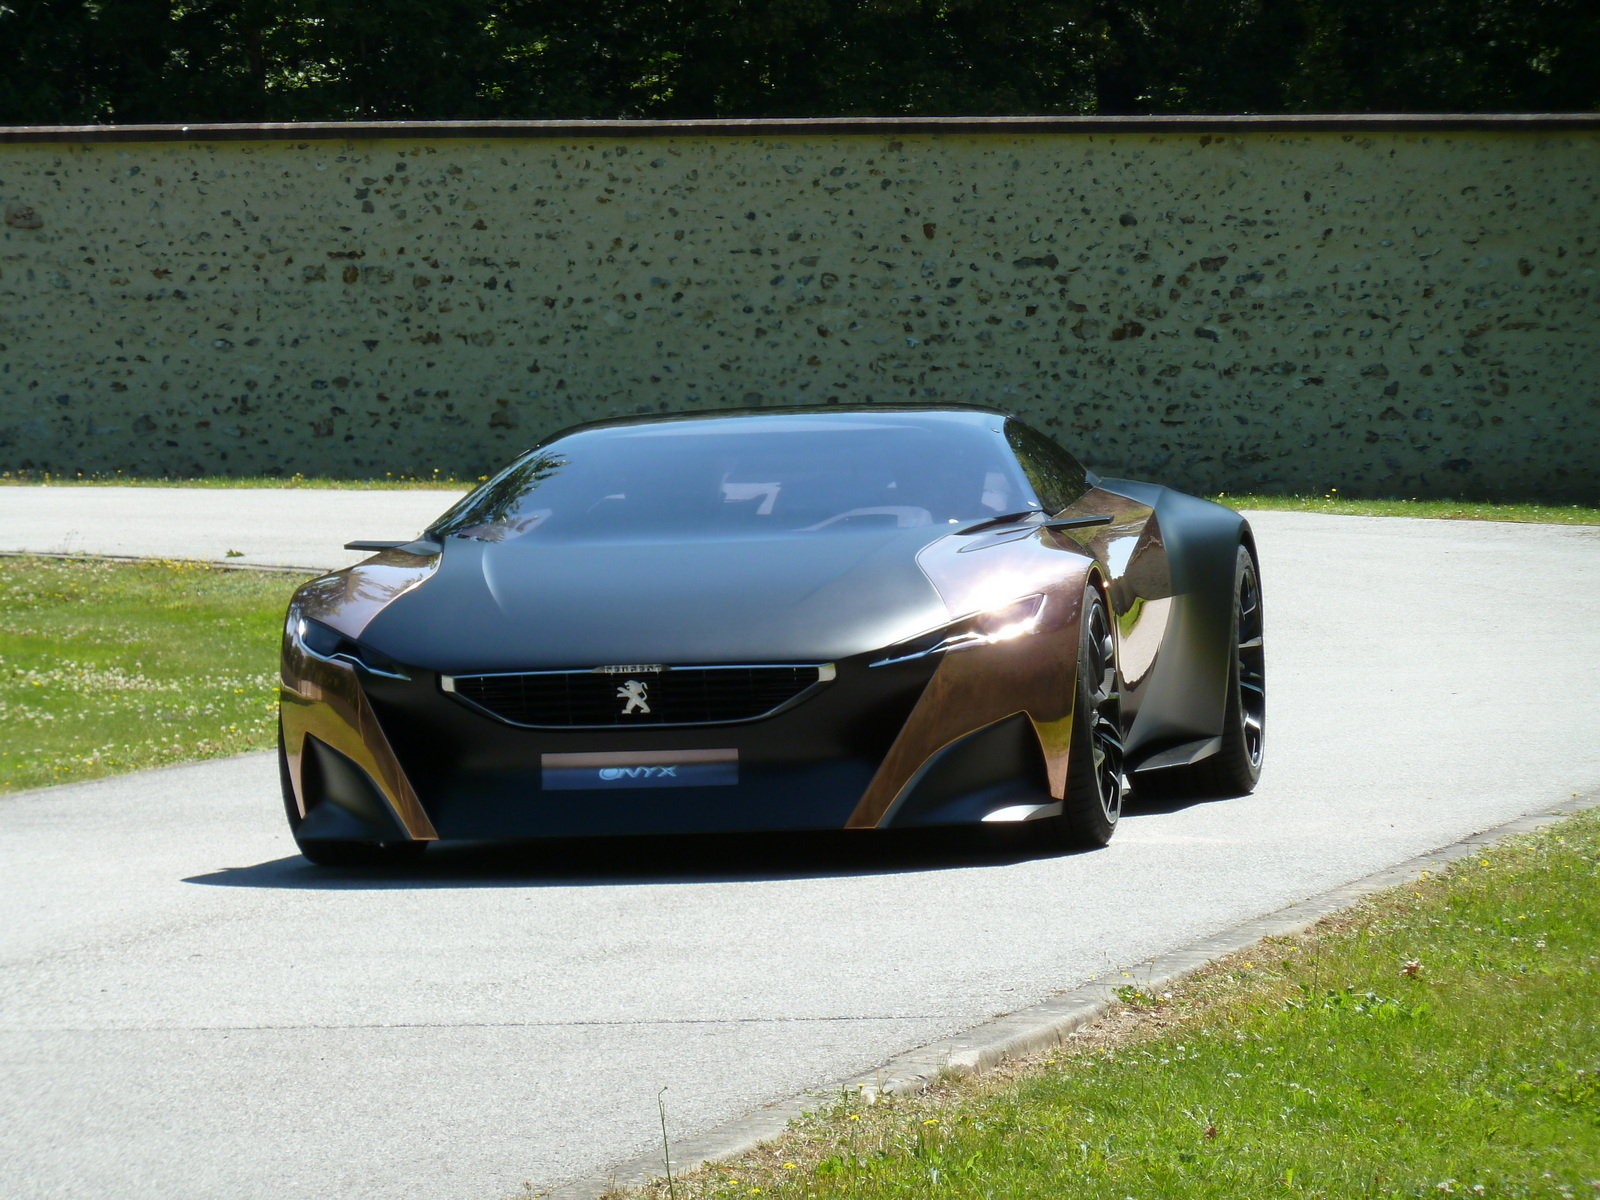 Win A Ride In The Peugeot Onyx Concept At The 2013